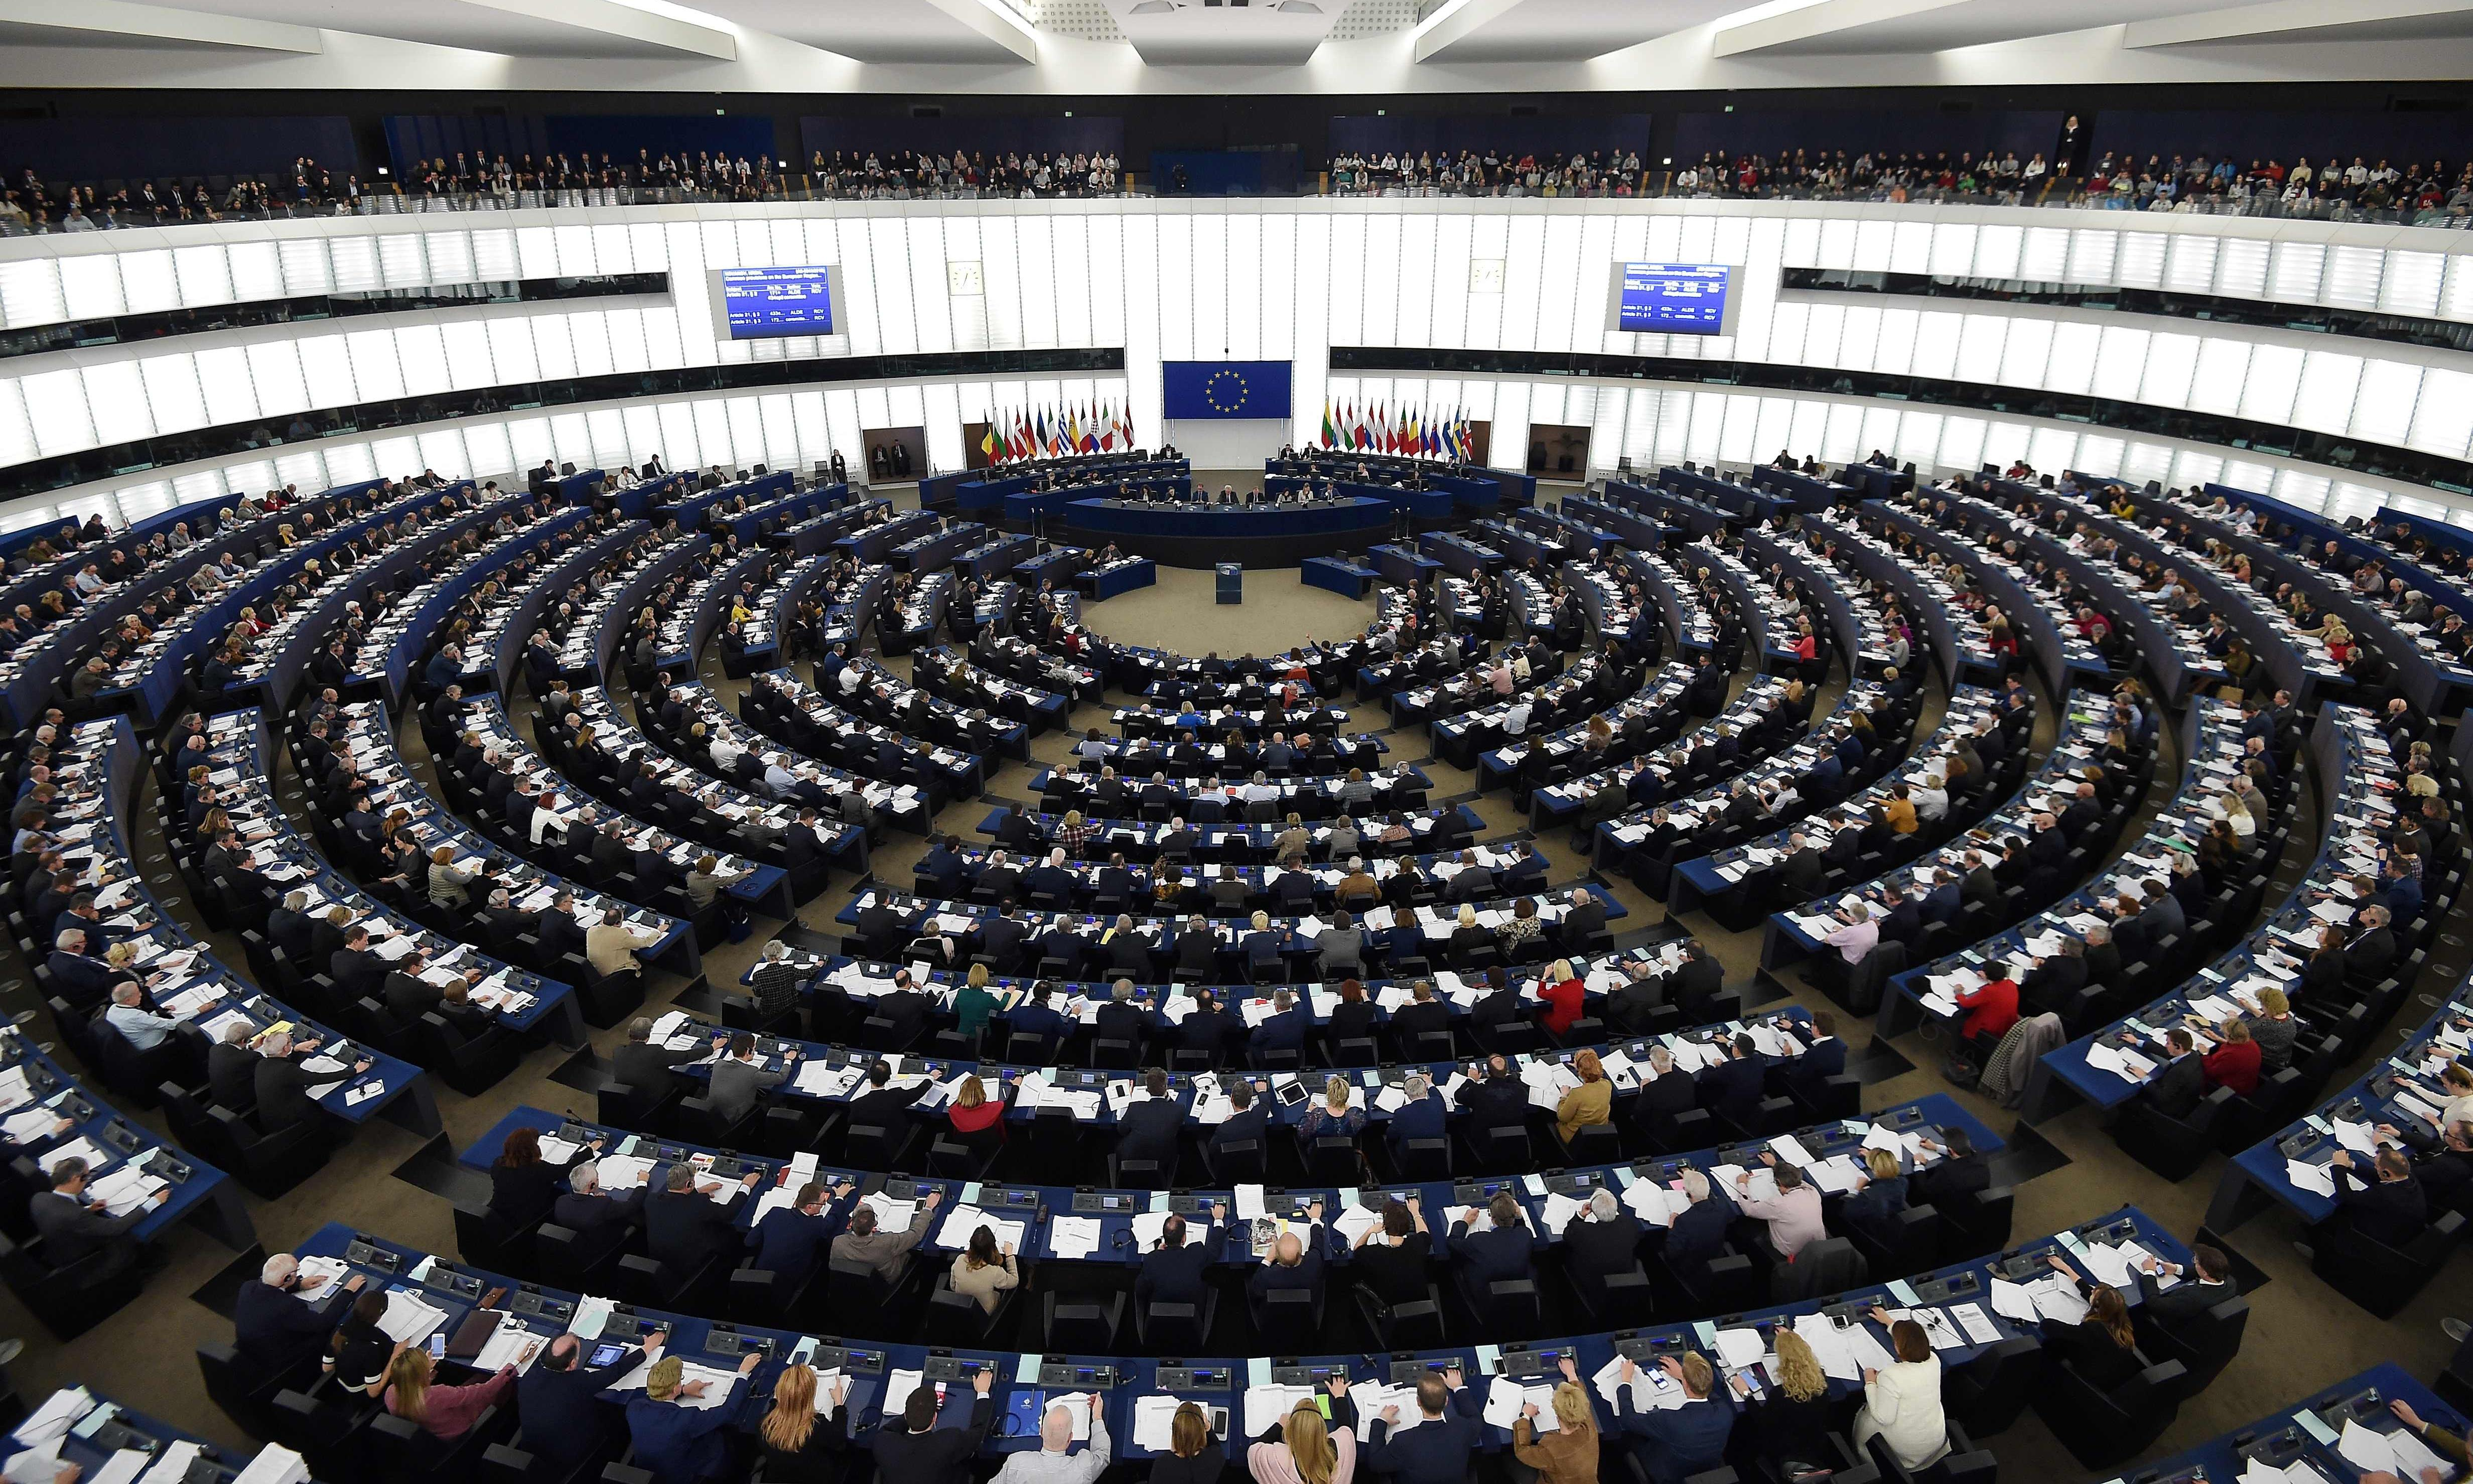 EU parliament's centrist coalition set to lose majority, poll finds